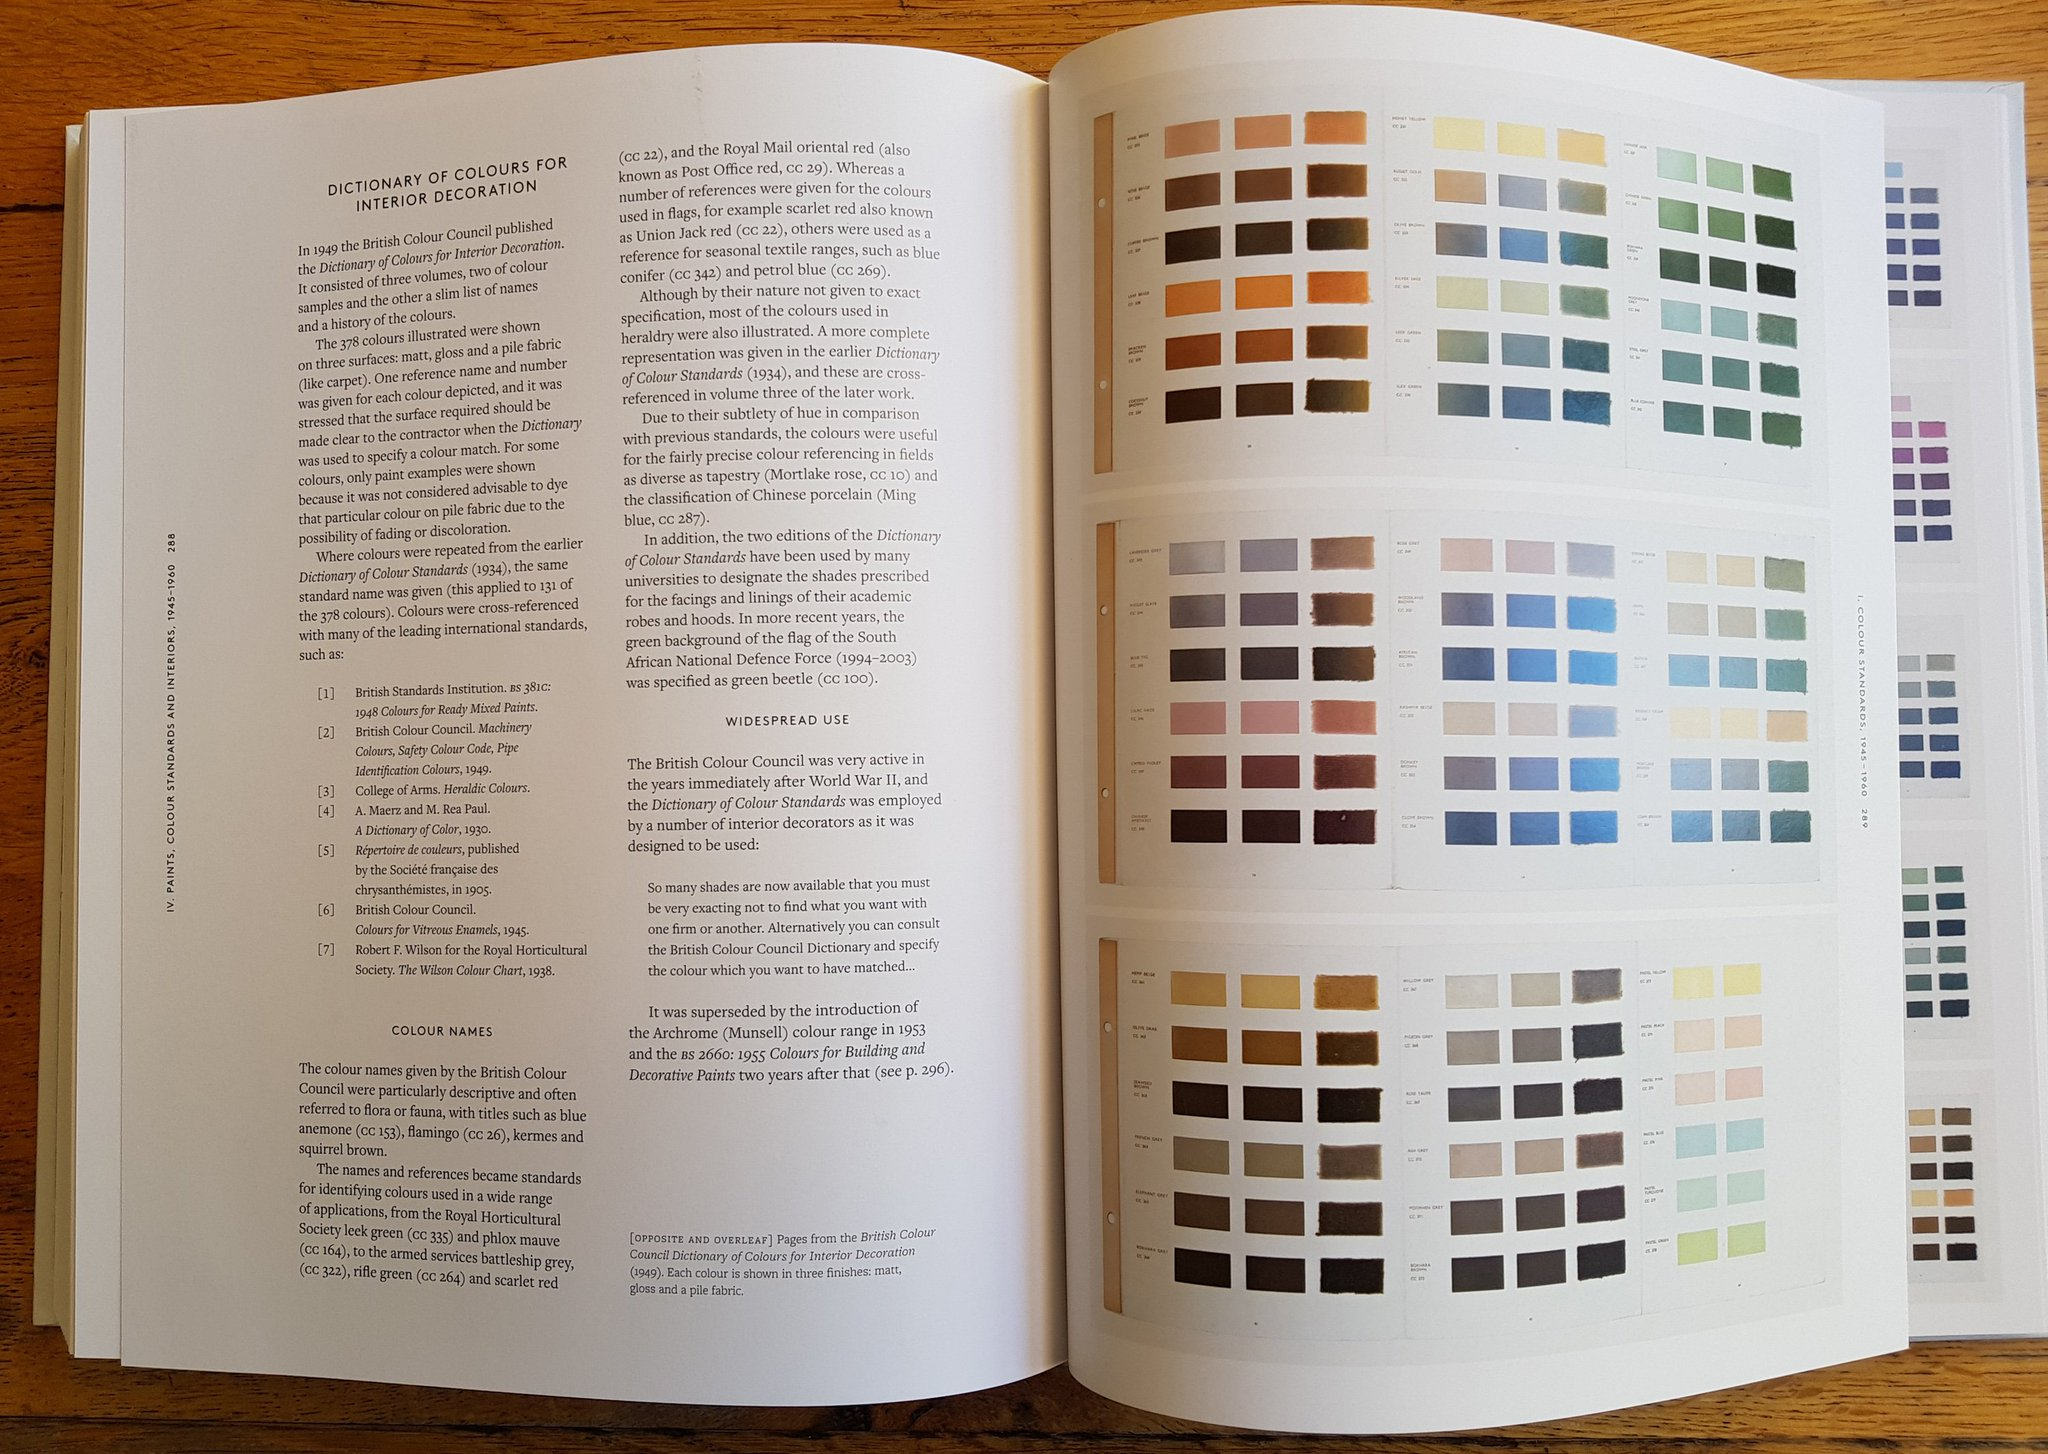 Book colour names - Patrick Baty On Twitter A Month Before It Appears On The Shelves The Advance Copy Of The Anatomy Of Colour Has Arrived Looks Good